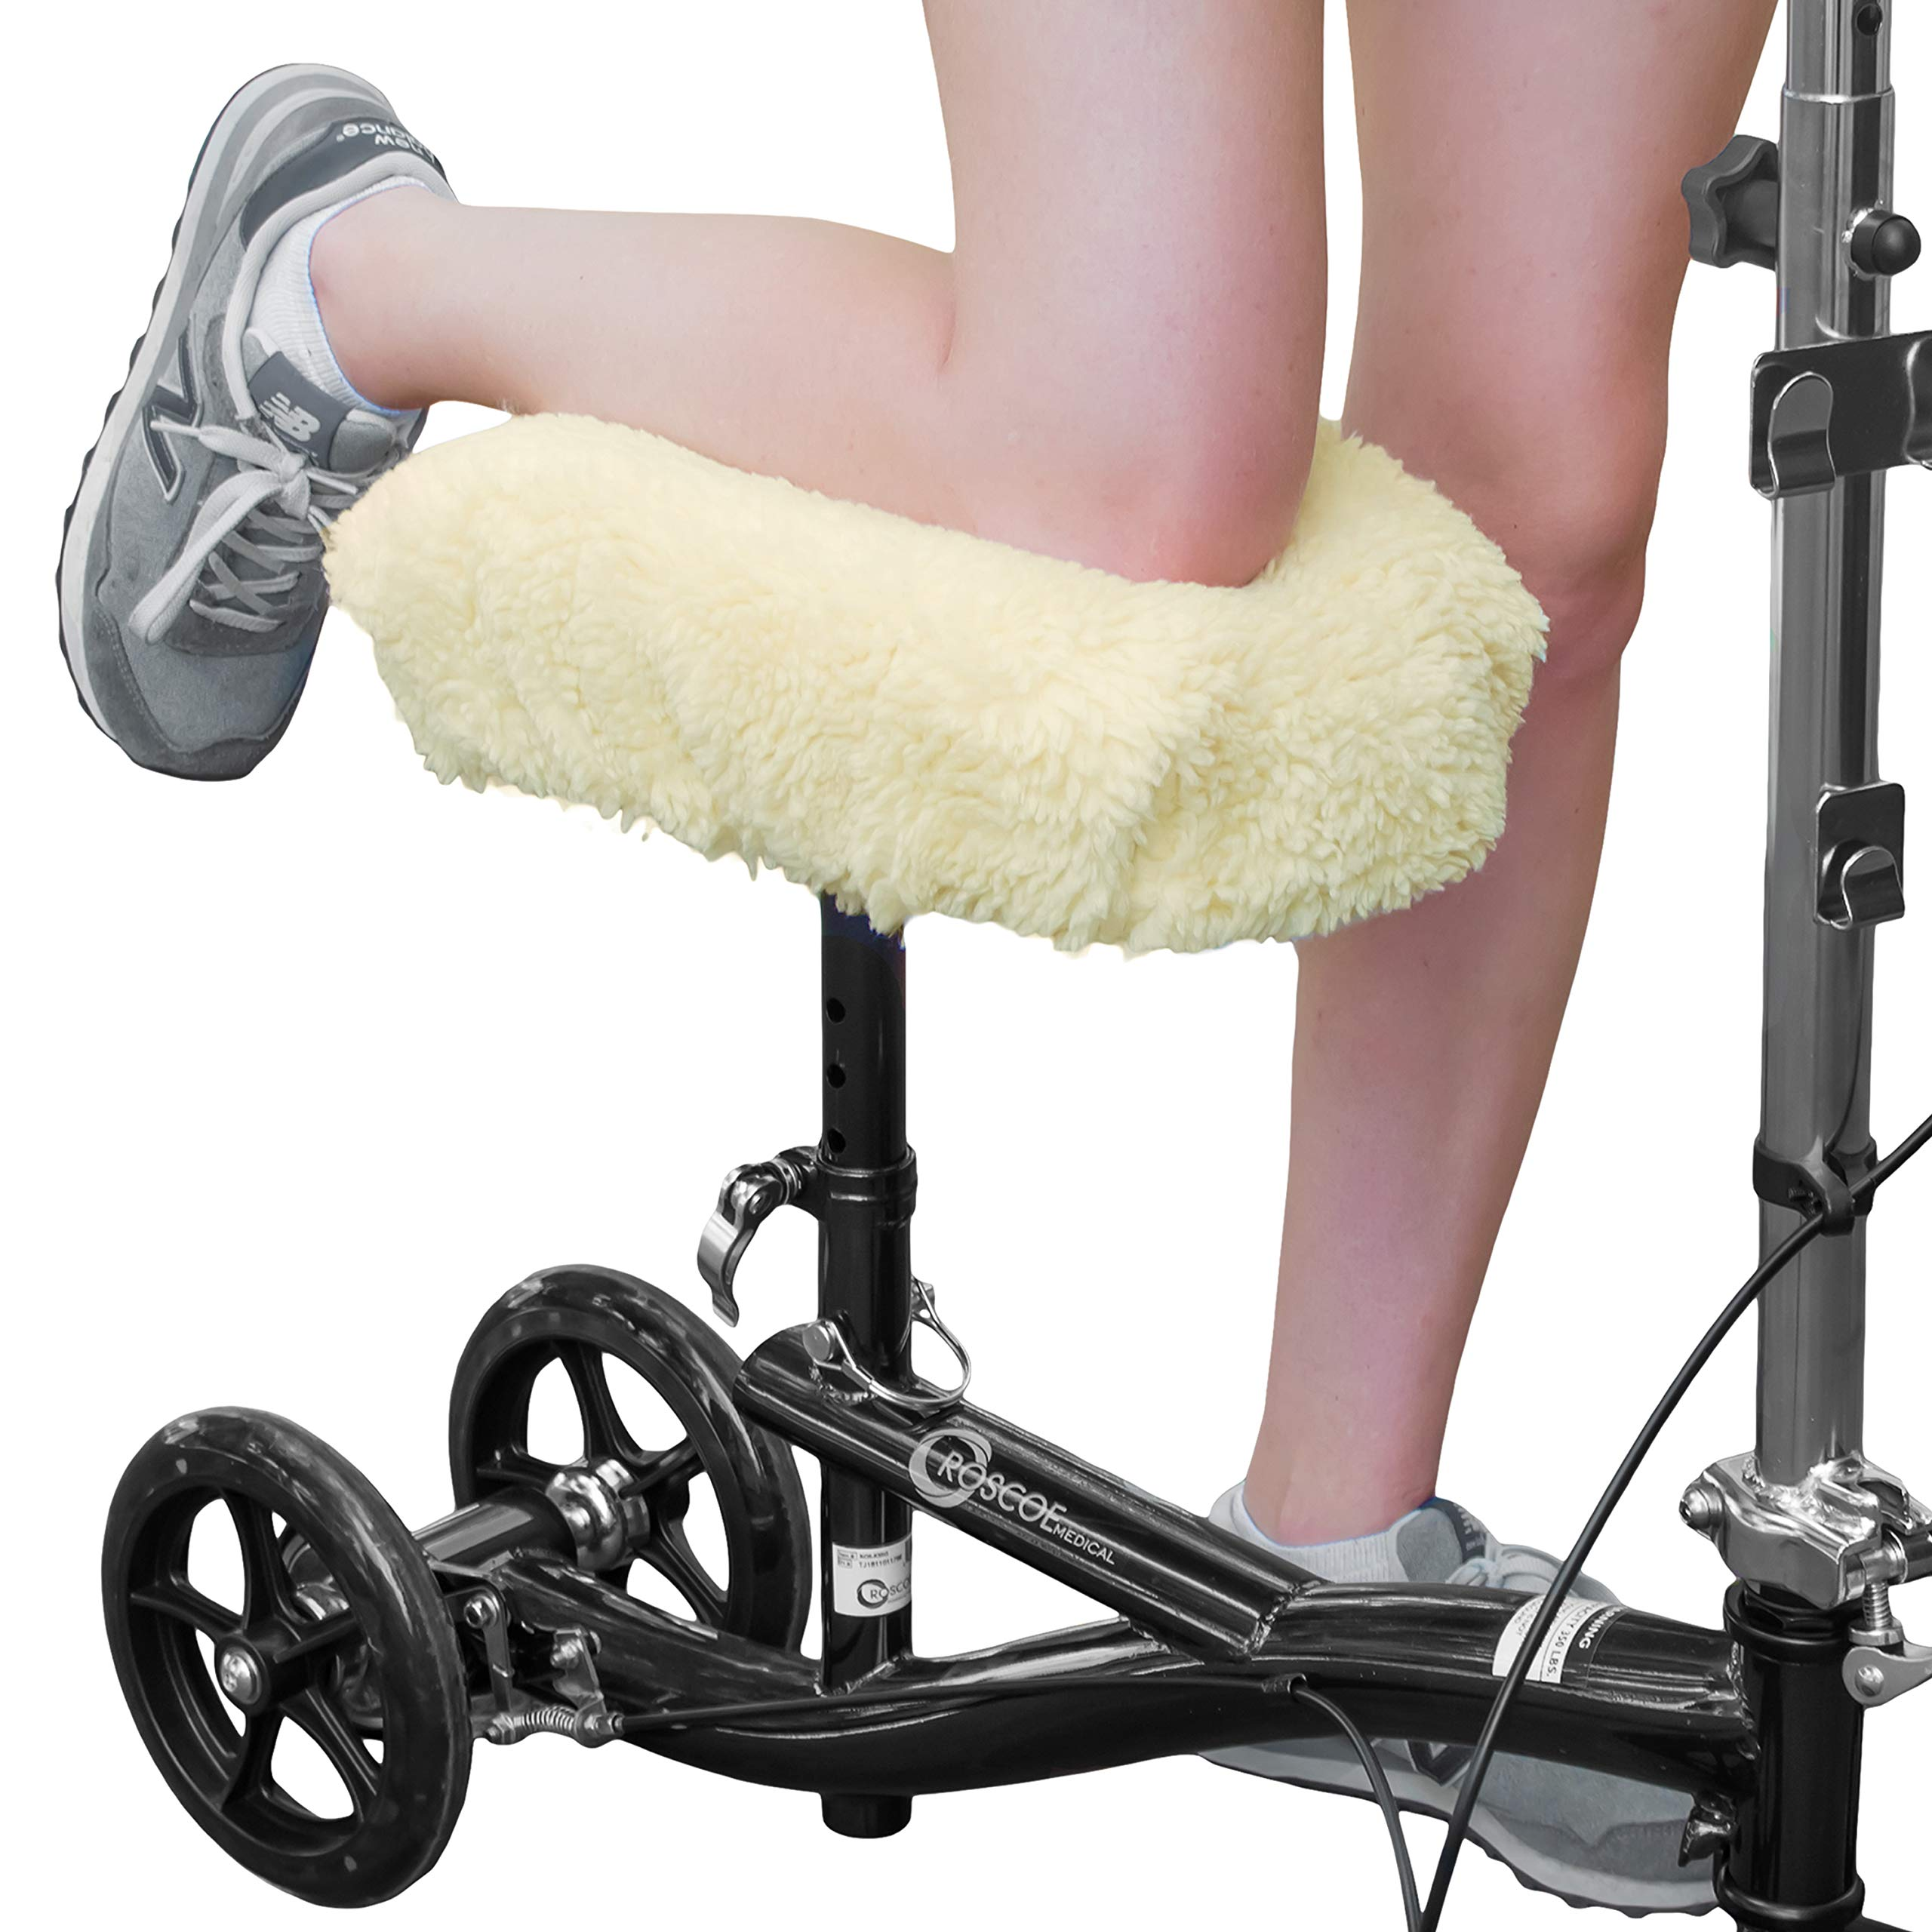 RMS Knee Walker Pad Cover - Plush Synthetic Faux Sheepskin Scooter Seat Cushion - Padded Foam for Comfort During Injury - Washable and Reusable - Fits Most Knee Scooters by RMS Royal Medical Solutions, Inc.